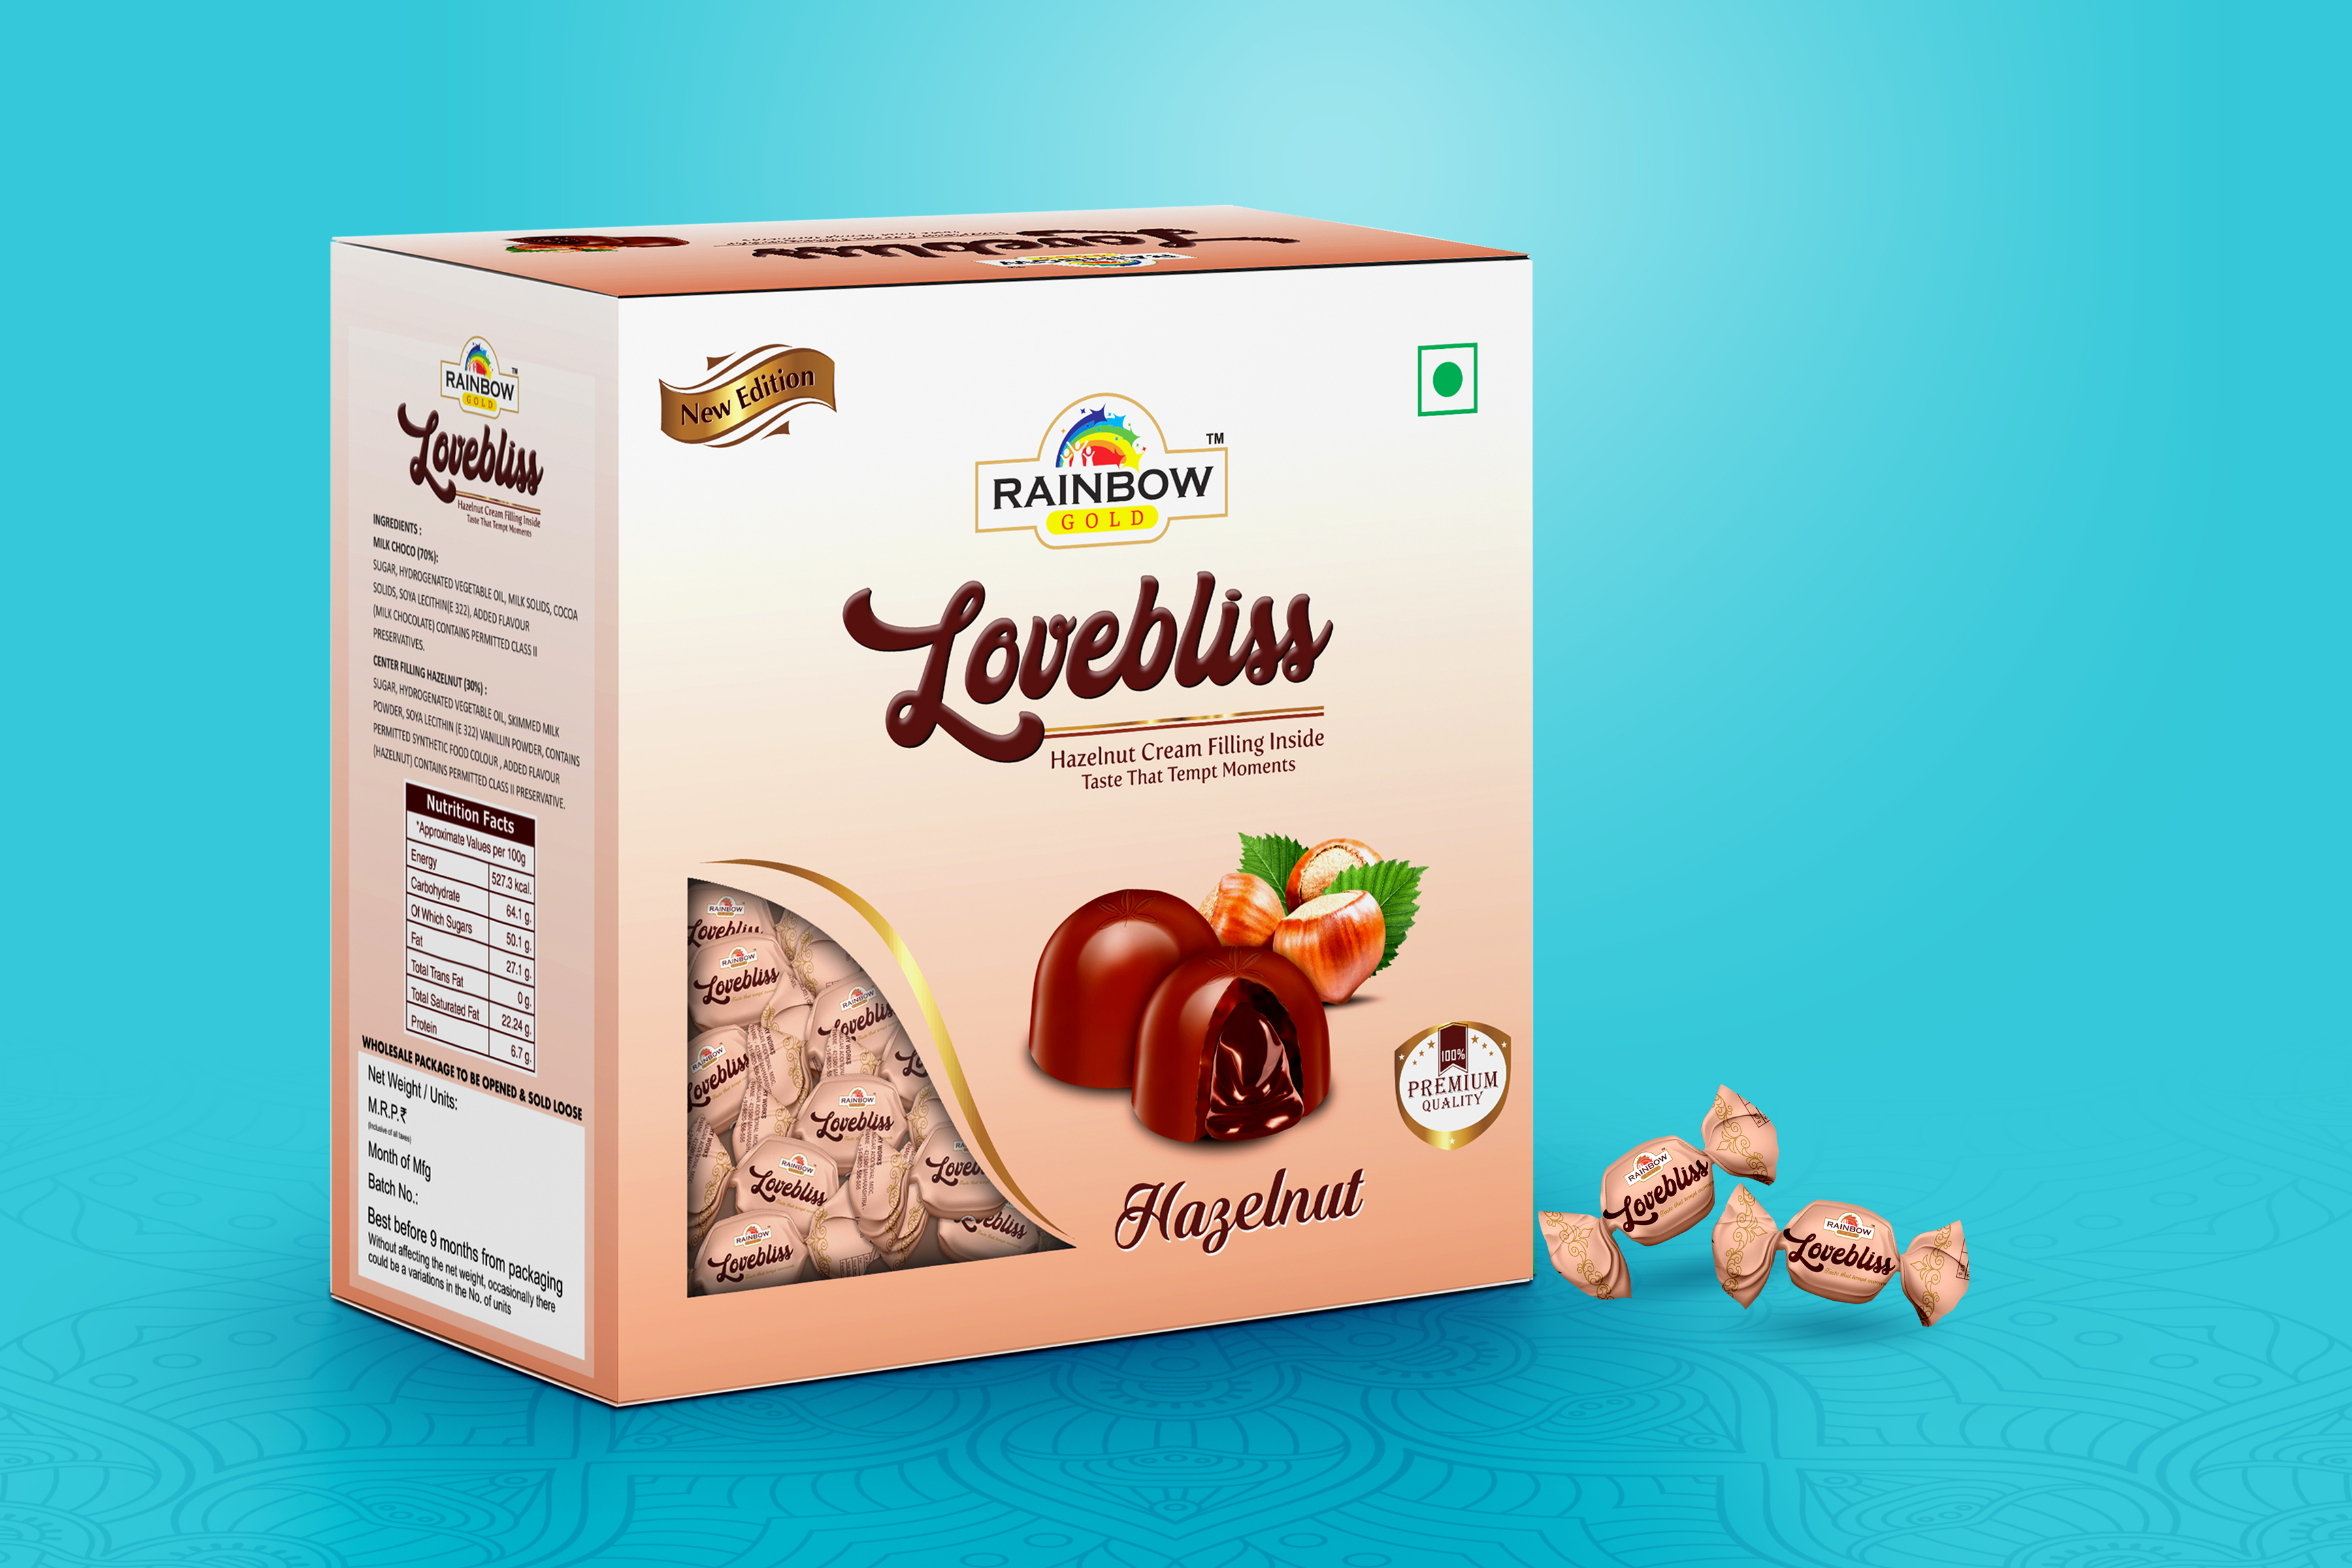 Rainbow Gold – Lovebliss Hazelnut